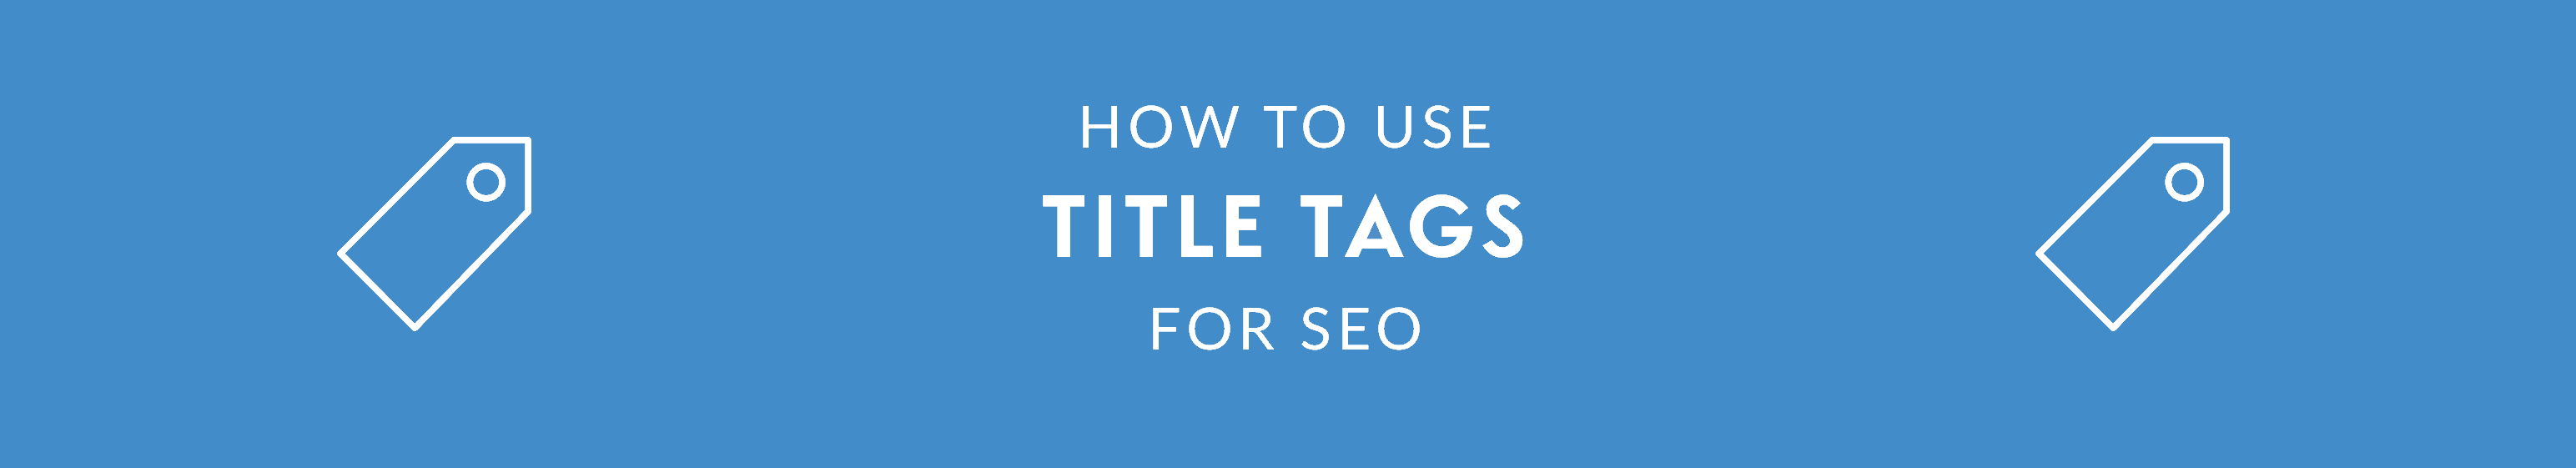 How to Use Title Tags for SEO